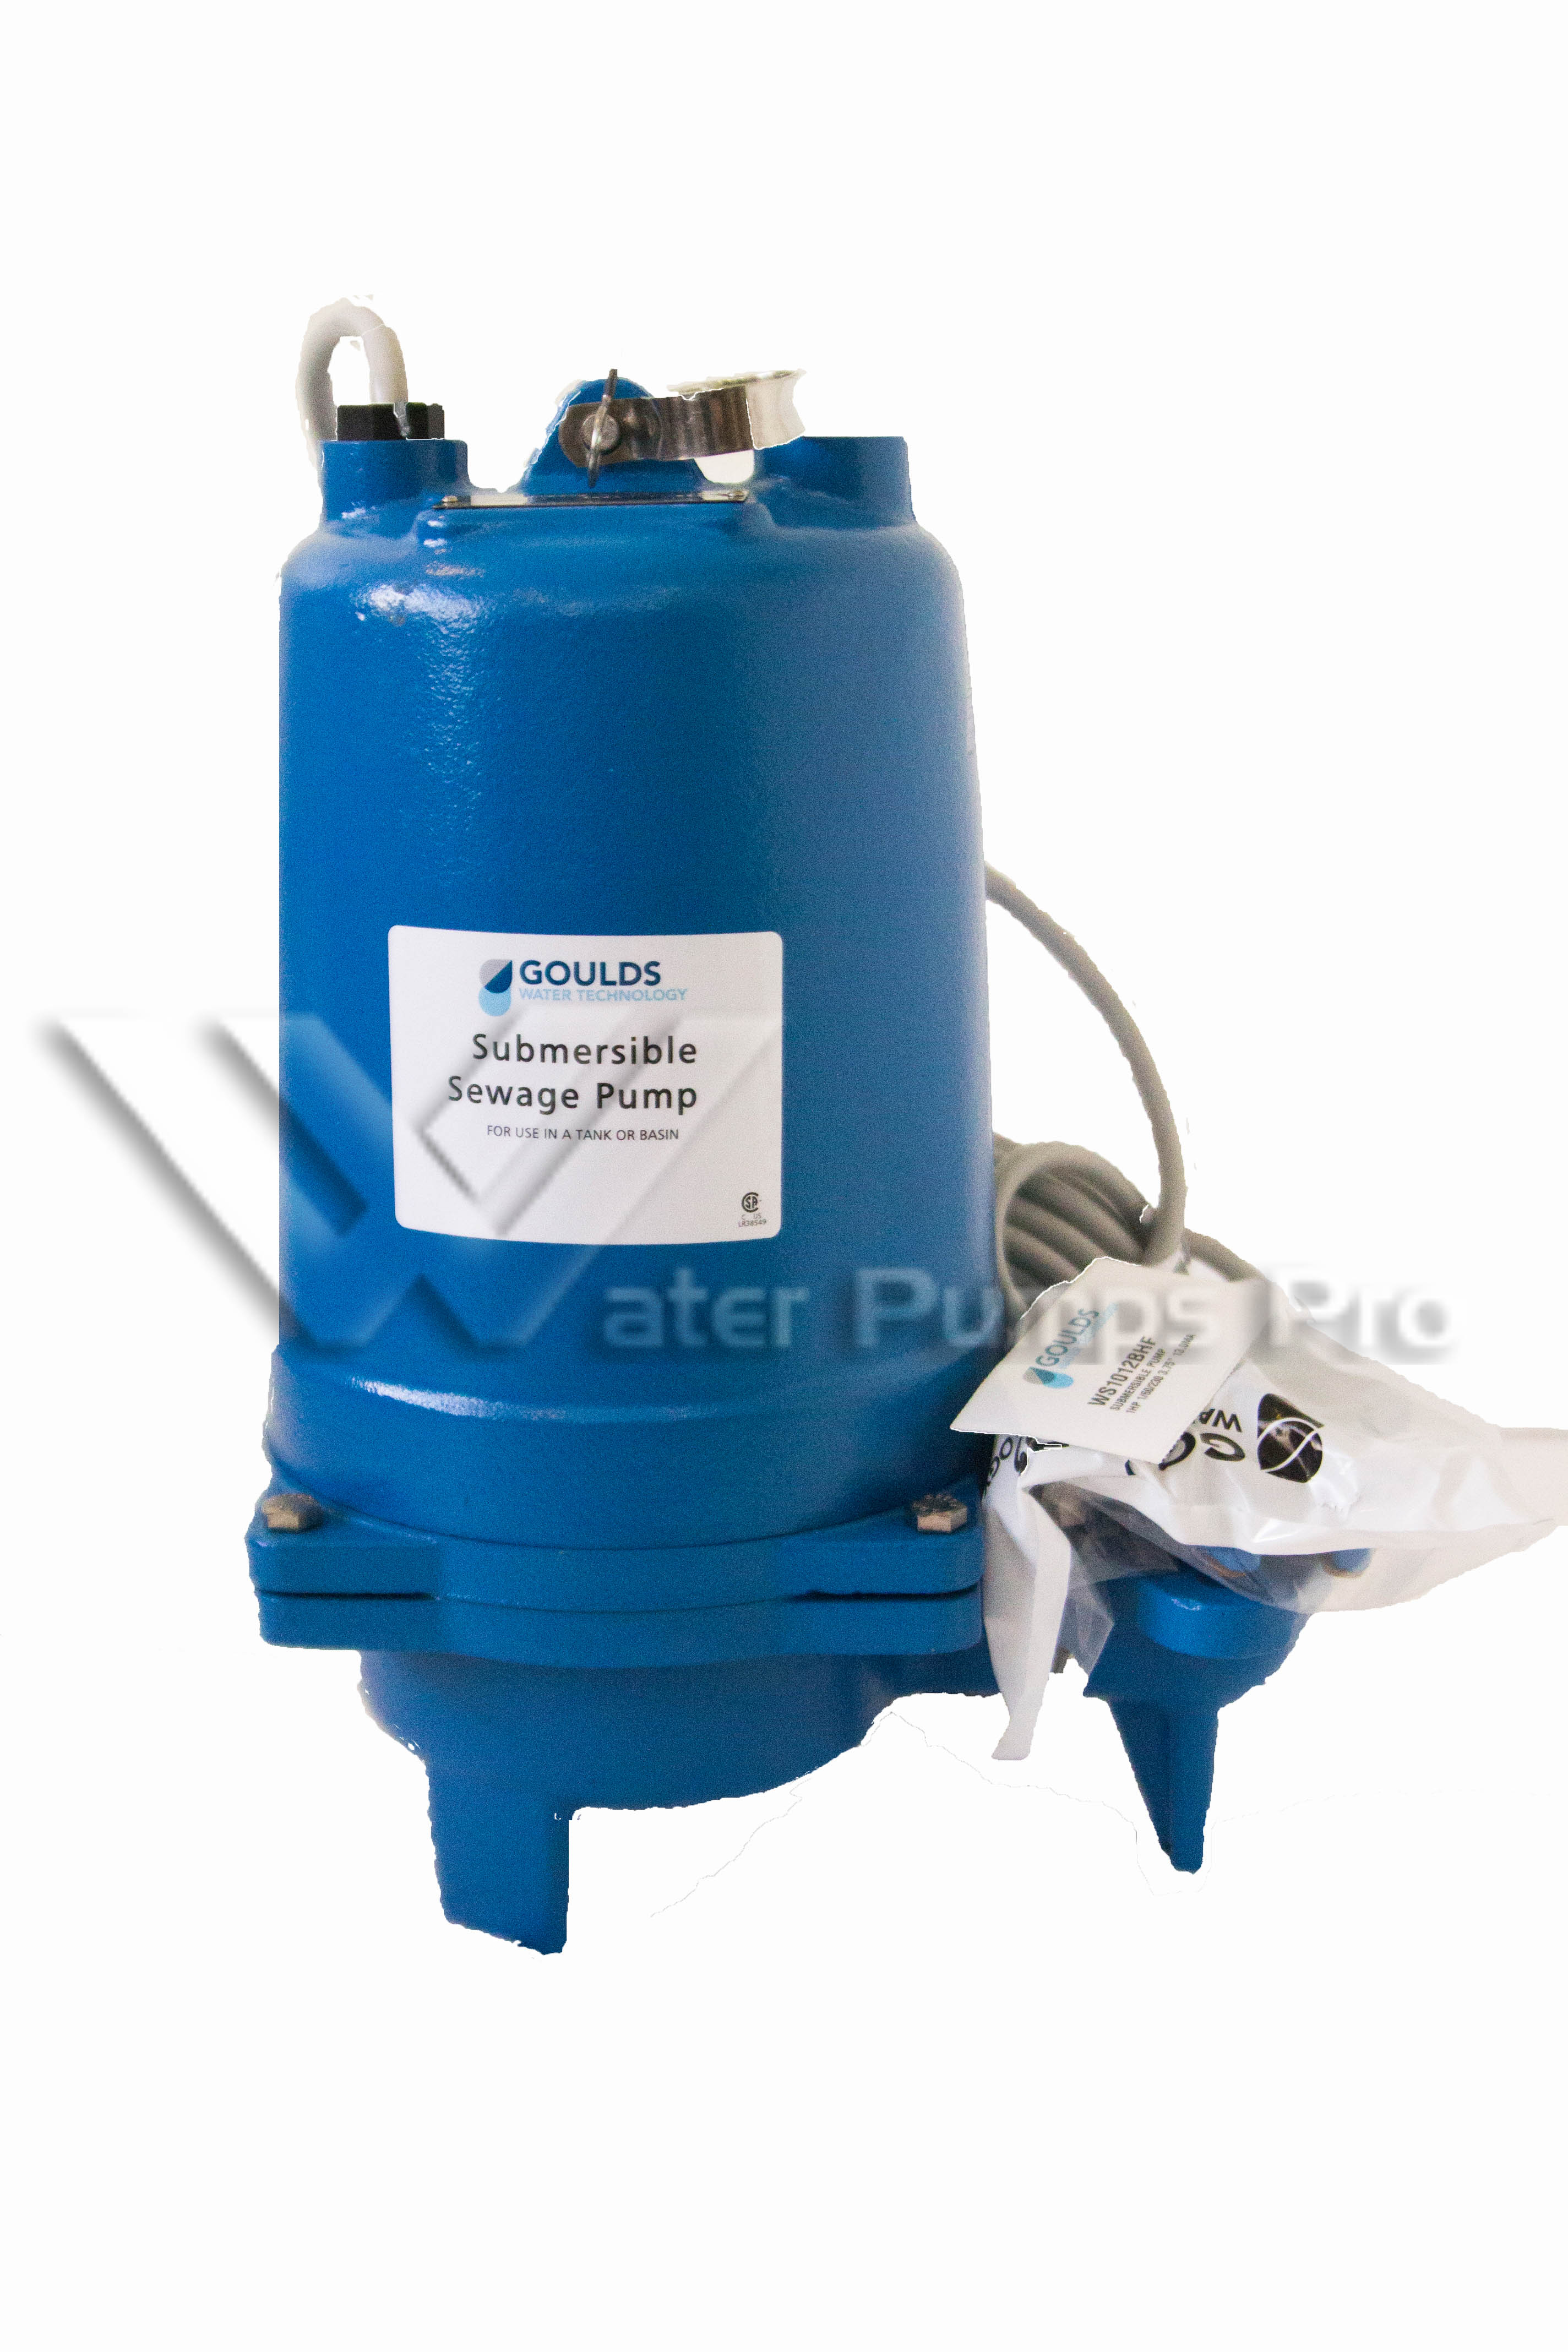 Goulds WS0511B Submersiblle Sewage Pump 3886 1/2HP 115V 1 Phase